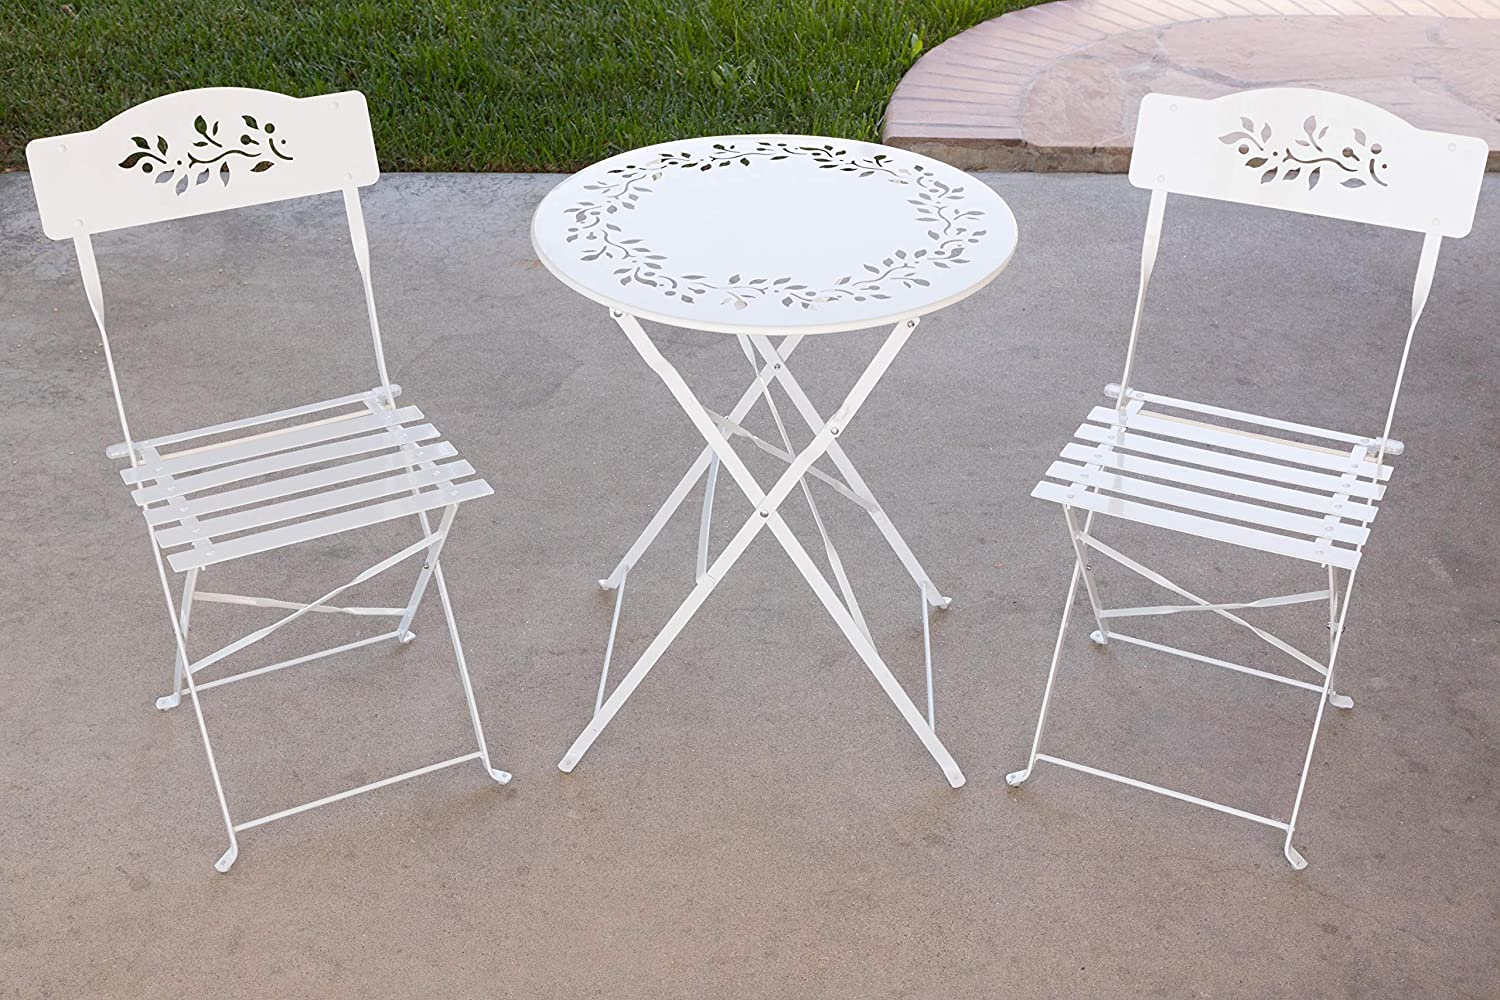 Alpine Corporation 3-Piece Floral Metal Bistro Set - Outdoor Conversation Set for Patio, Yard, Garden - White